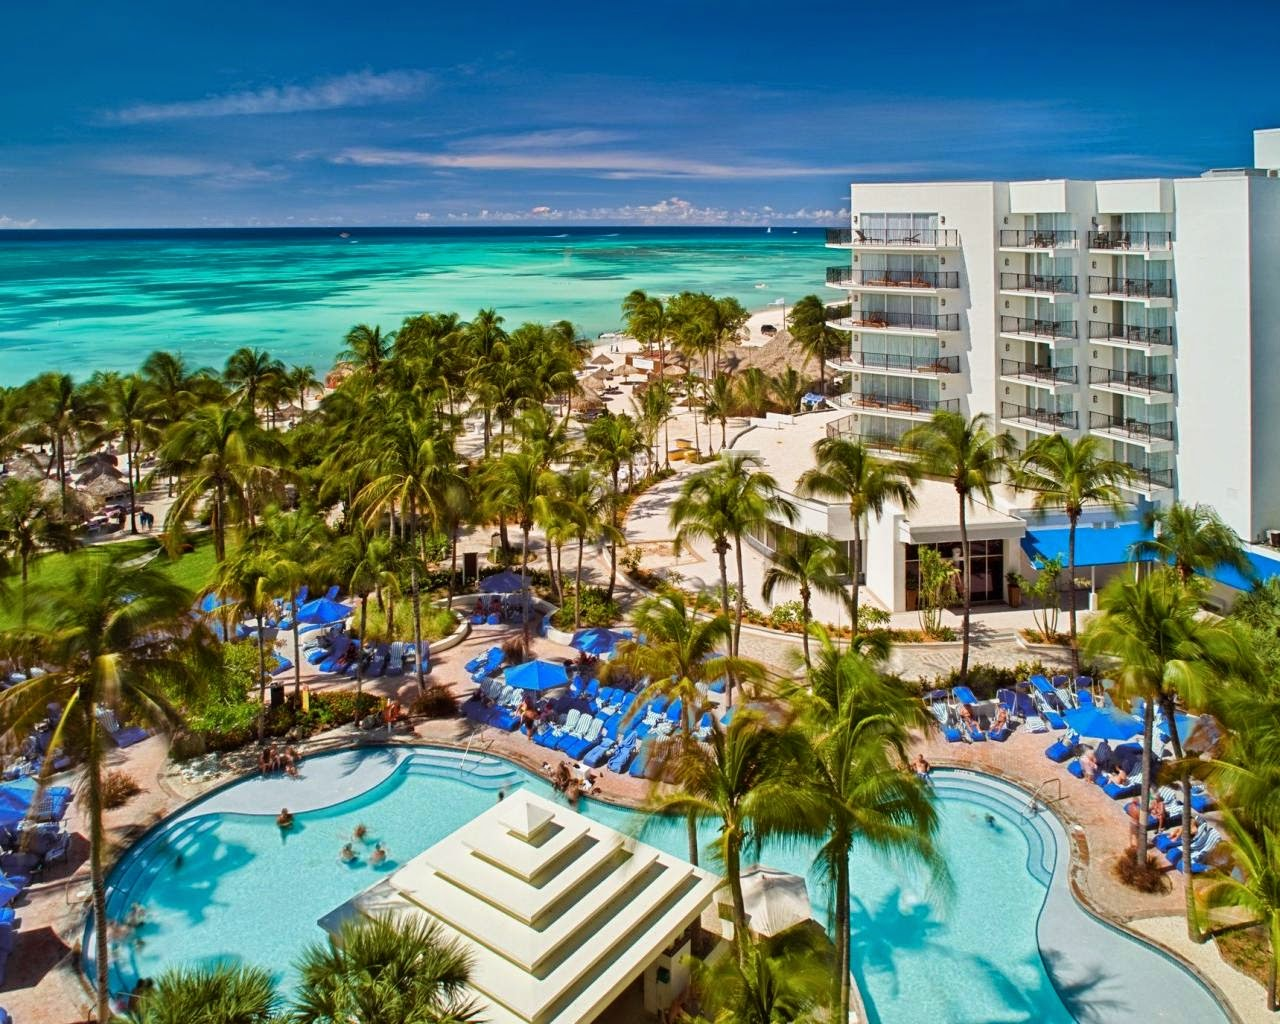 aruba marriott resort and stellaris casino, aruba deals - see